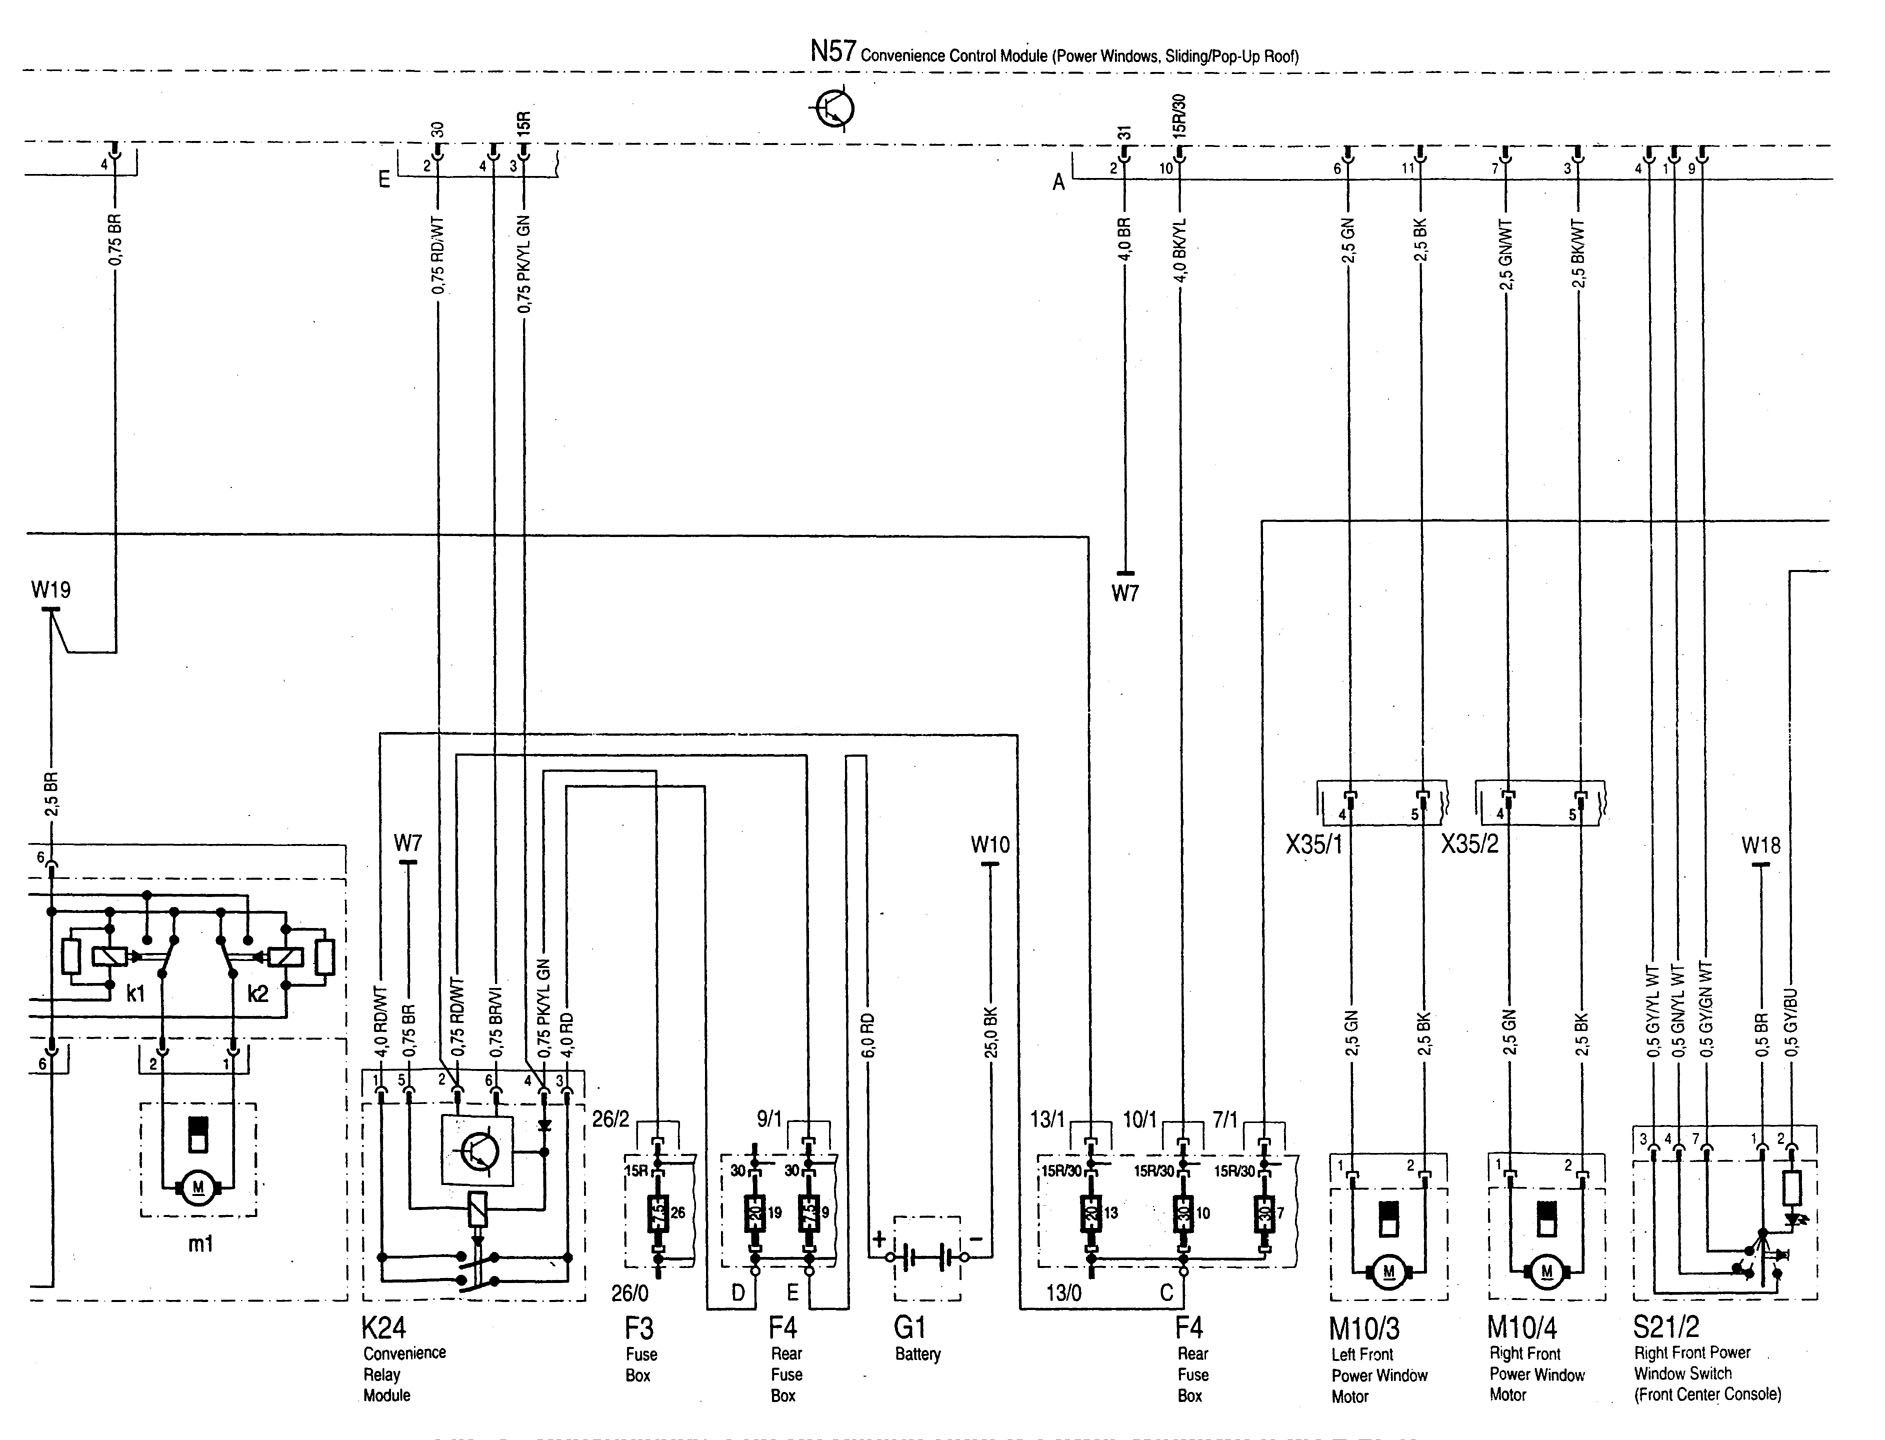 Mercedes Benz C280 1997 Wiring Diagrams Power Windows C220 Diagram Part 2